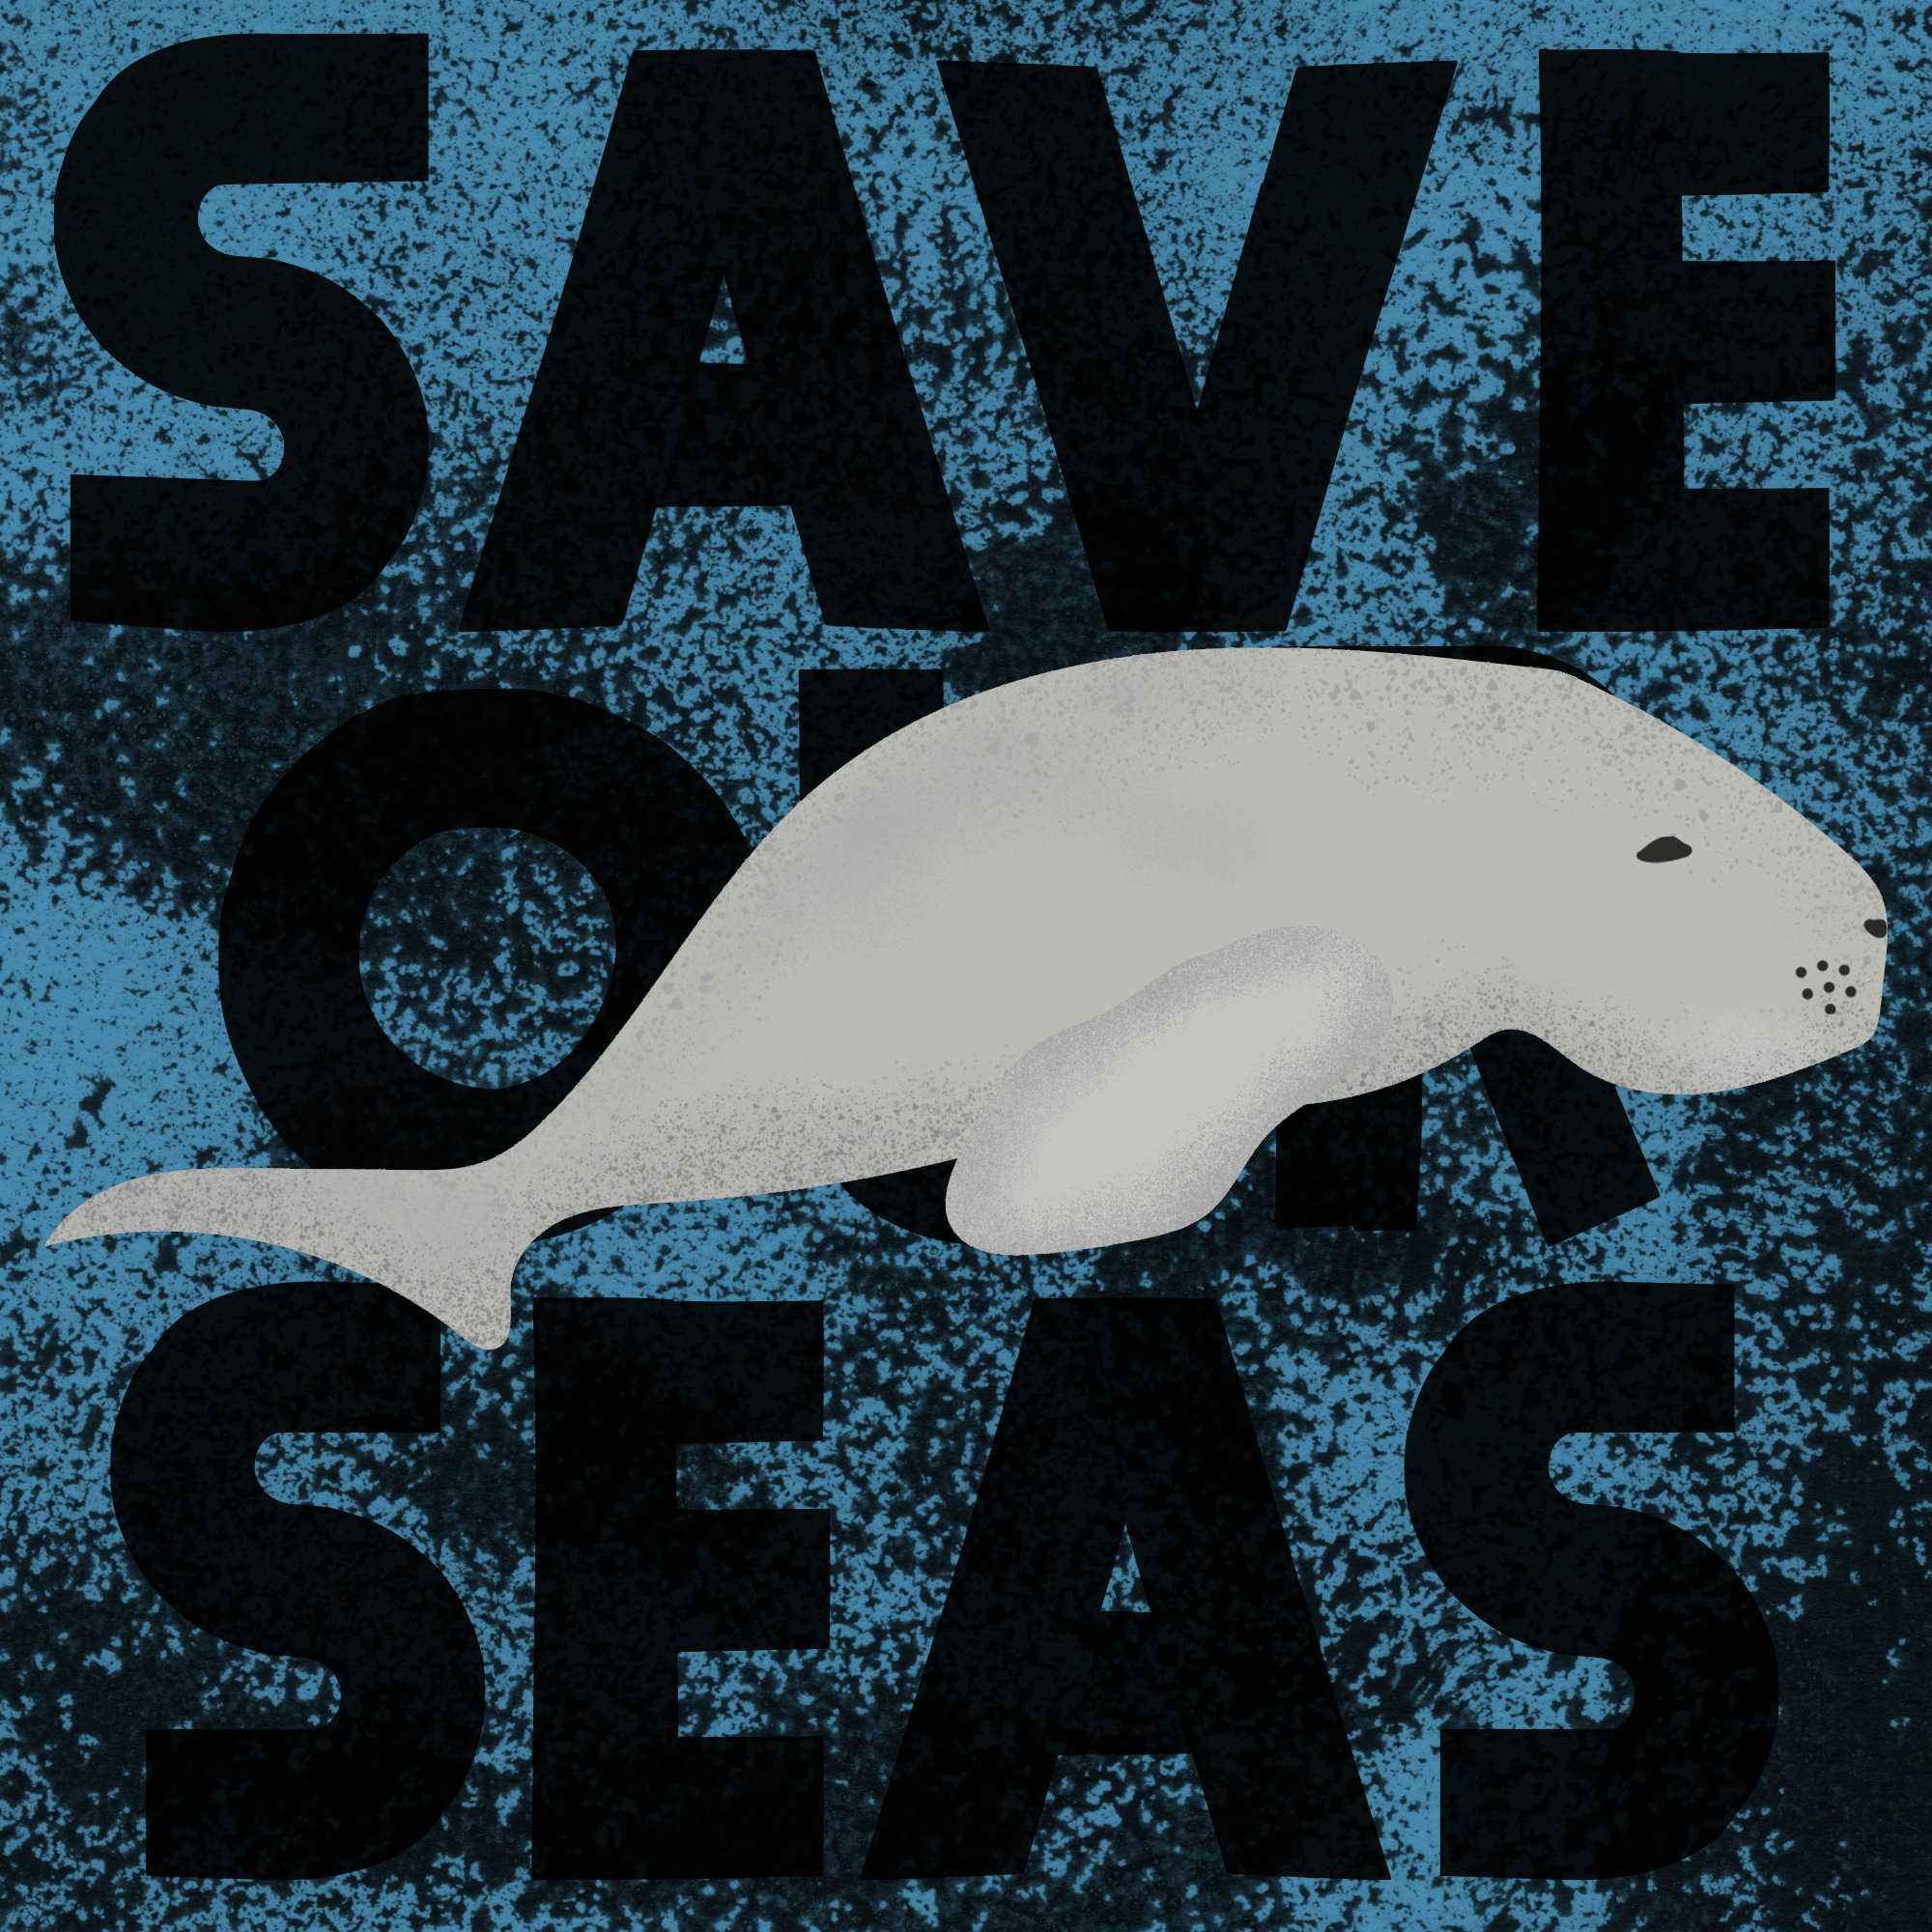 grey dugong on a dark blue painted background with large black letters reading Save Our Seas